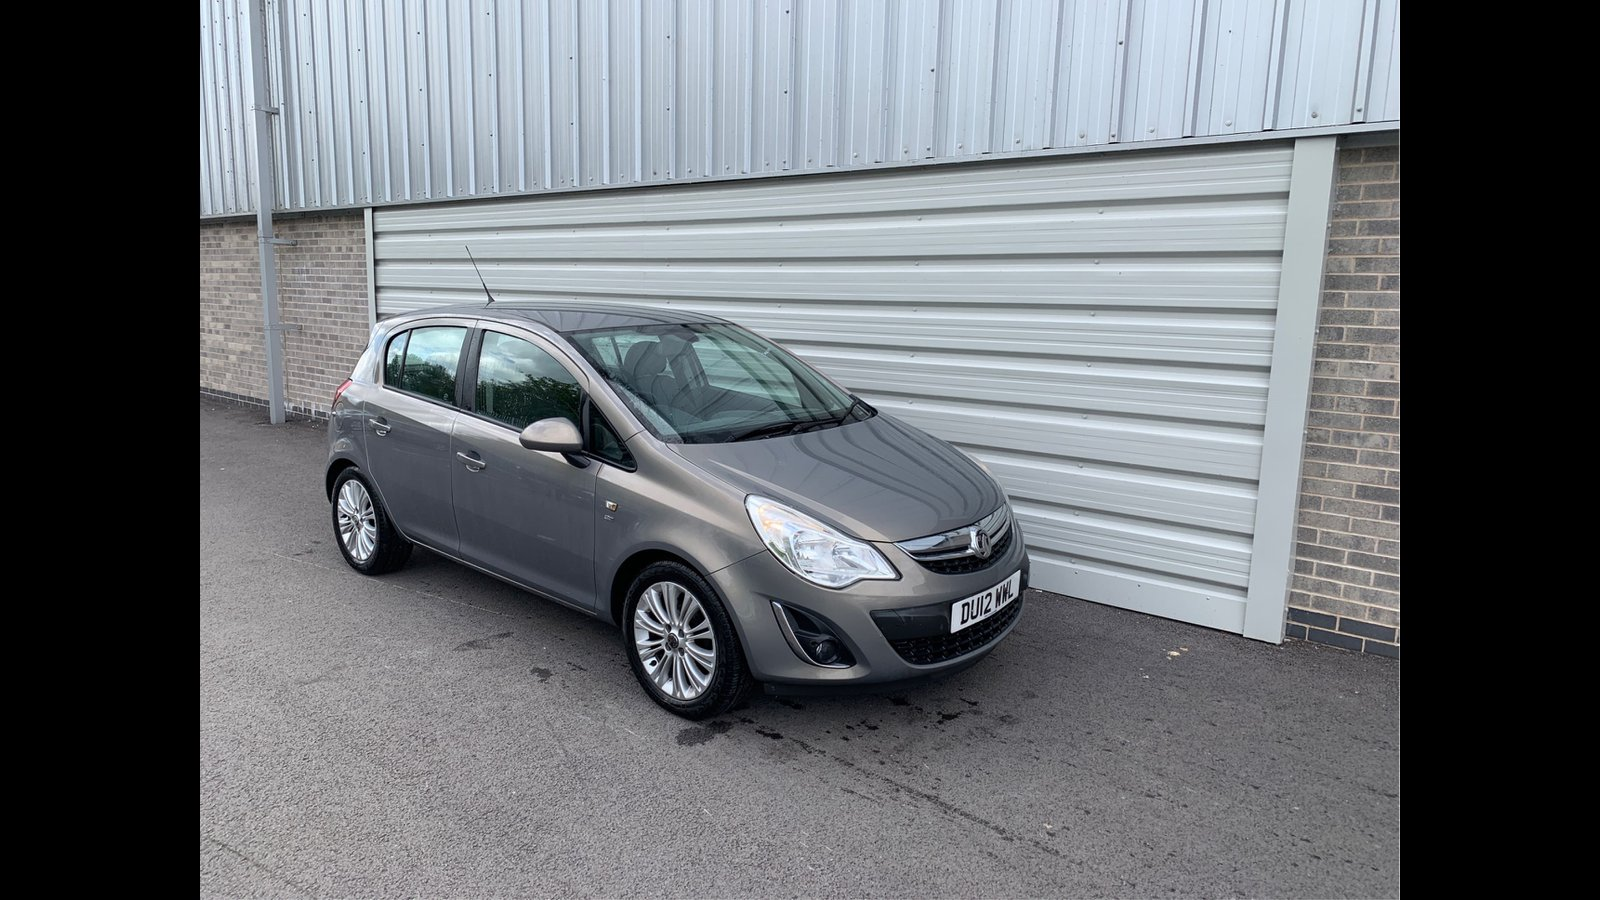 Used Vauxhall Corsa Cars for Sale | CarShop | CarShop